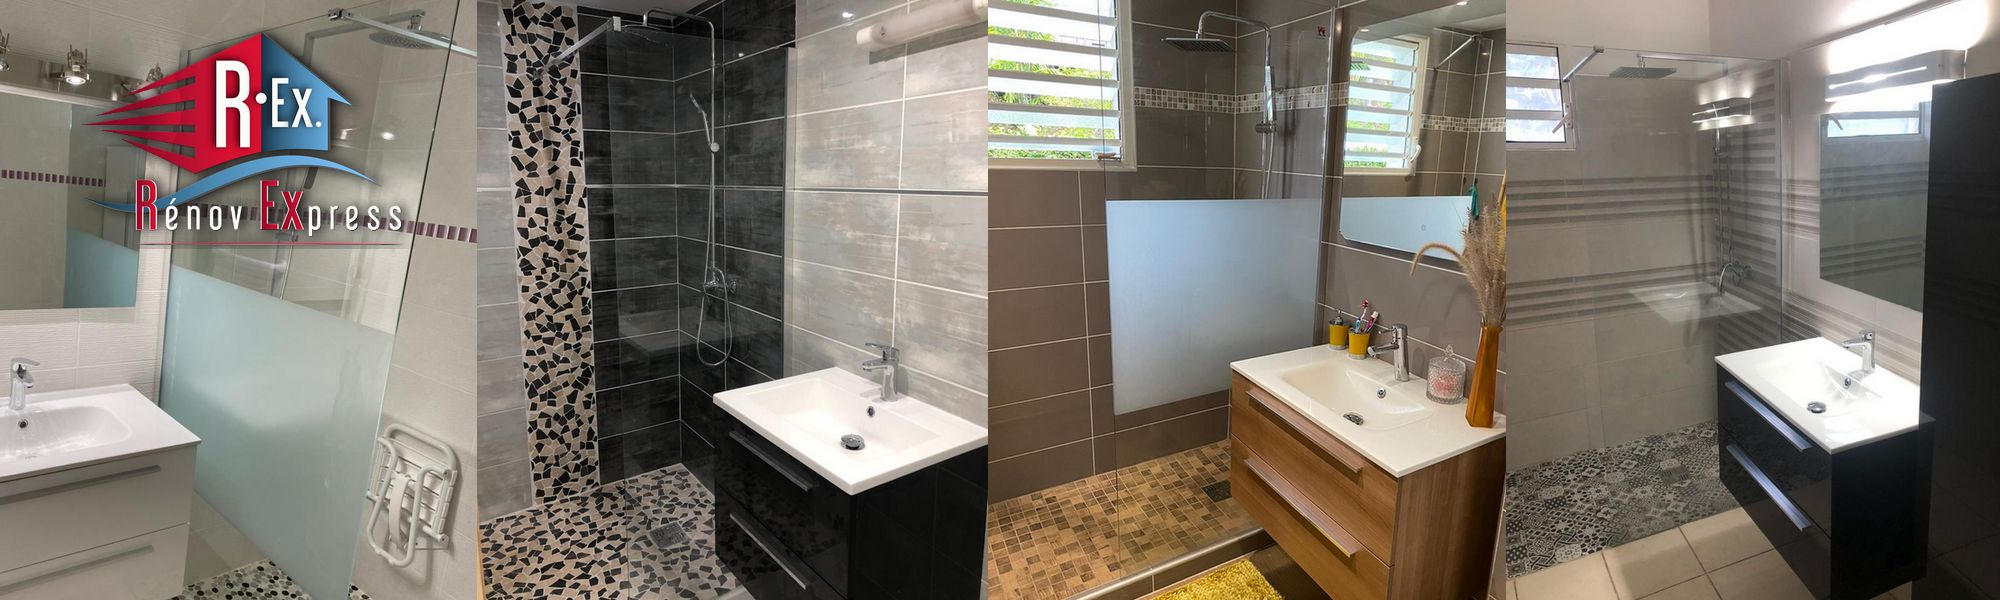 renovation appartement guadeloupe